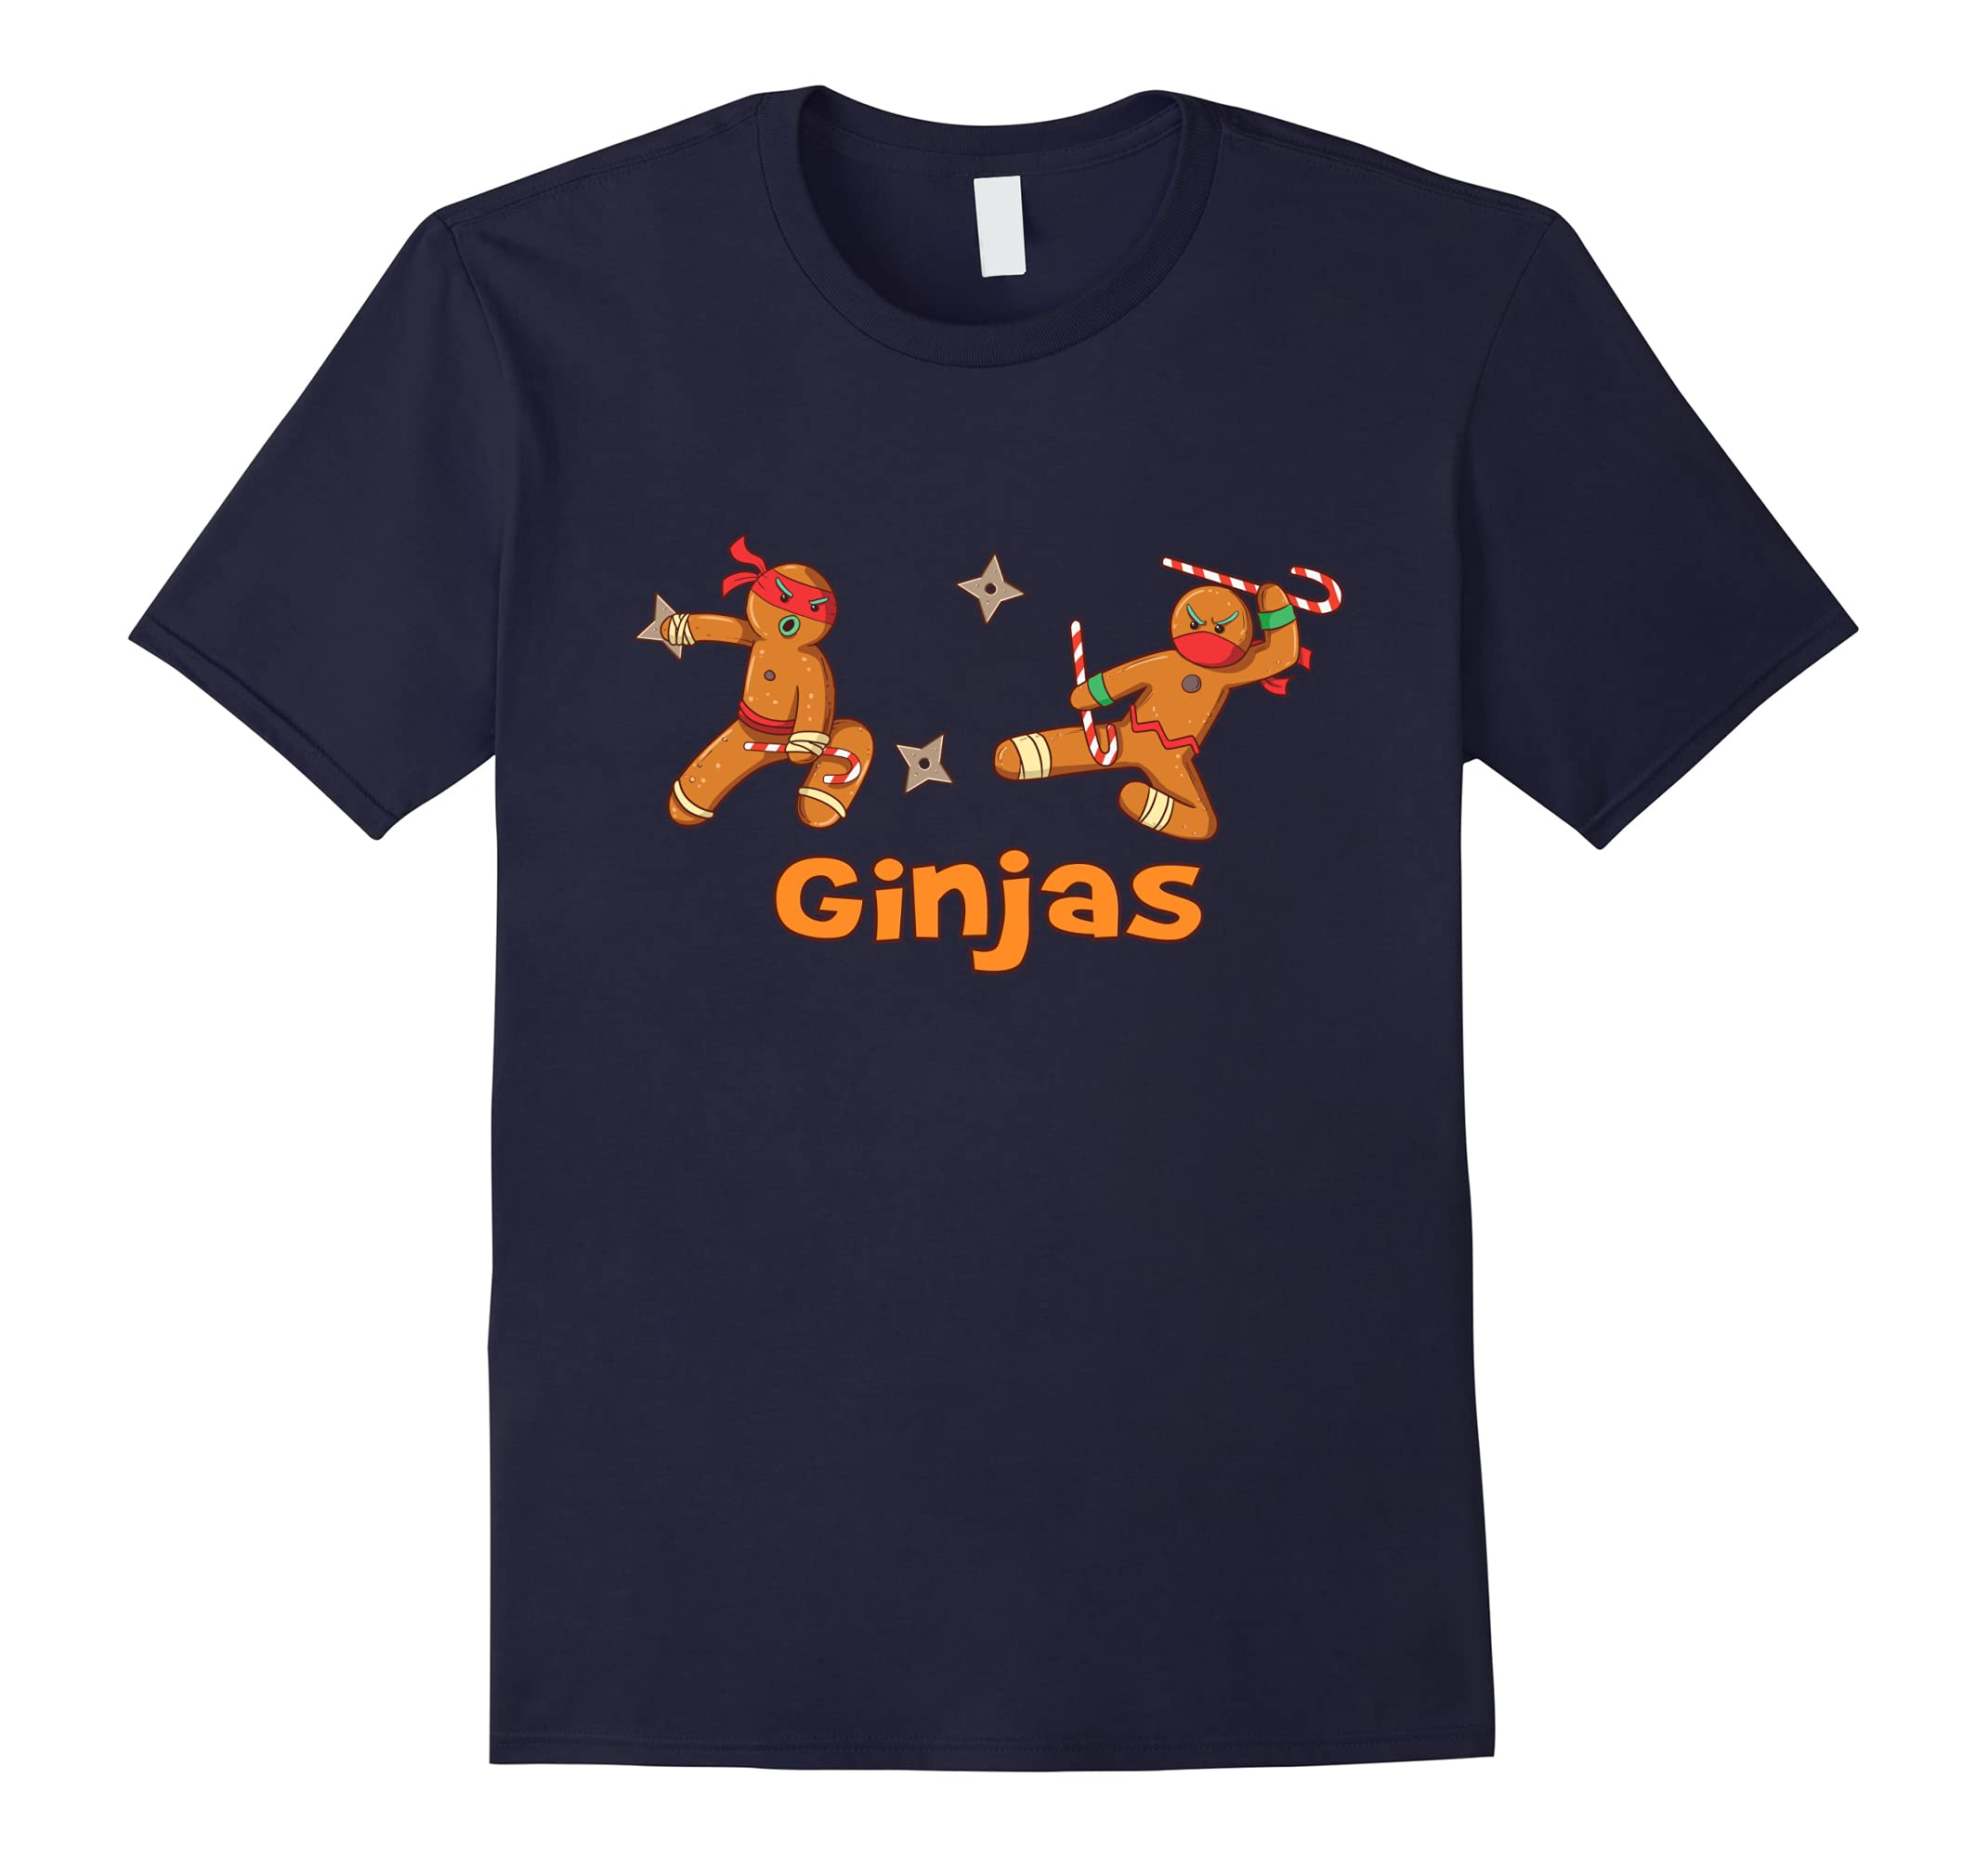 Ginjas Kids T shirt Mens Womens-Tovacu